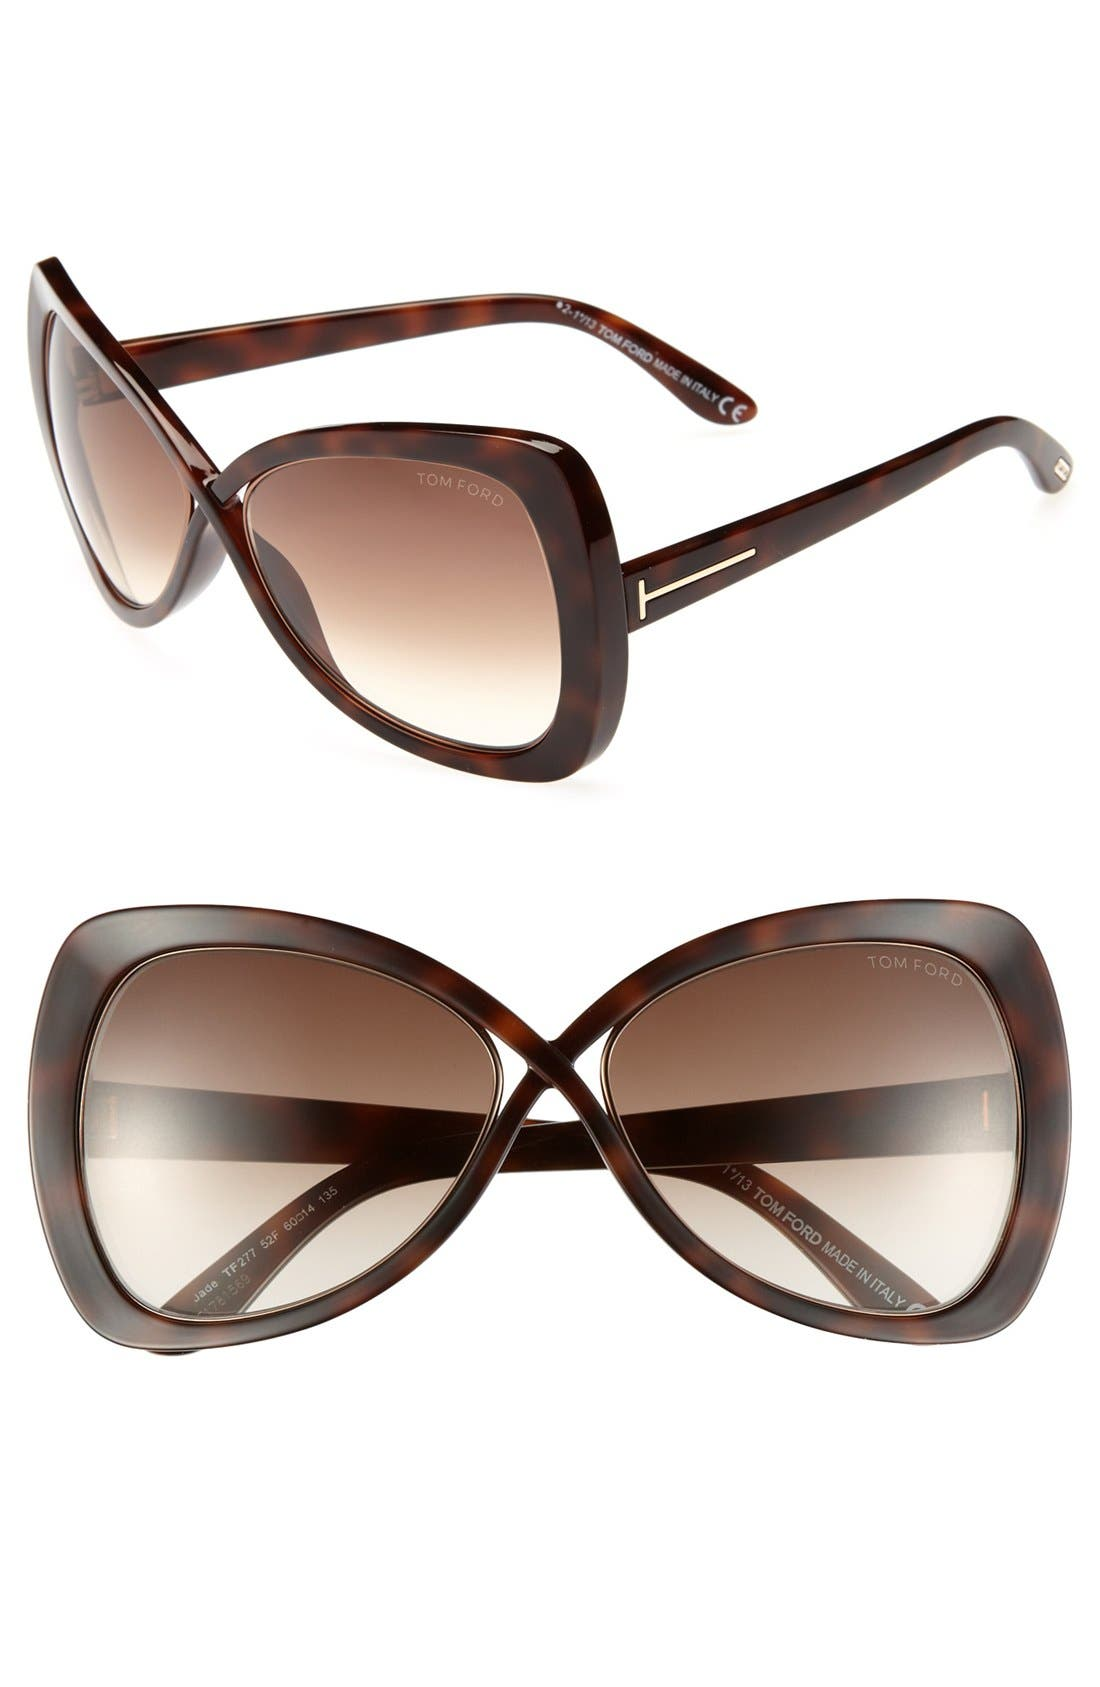 Main Image - Tom Ford 60mm 'Jade' Sunglasses